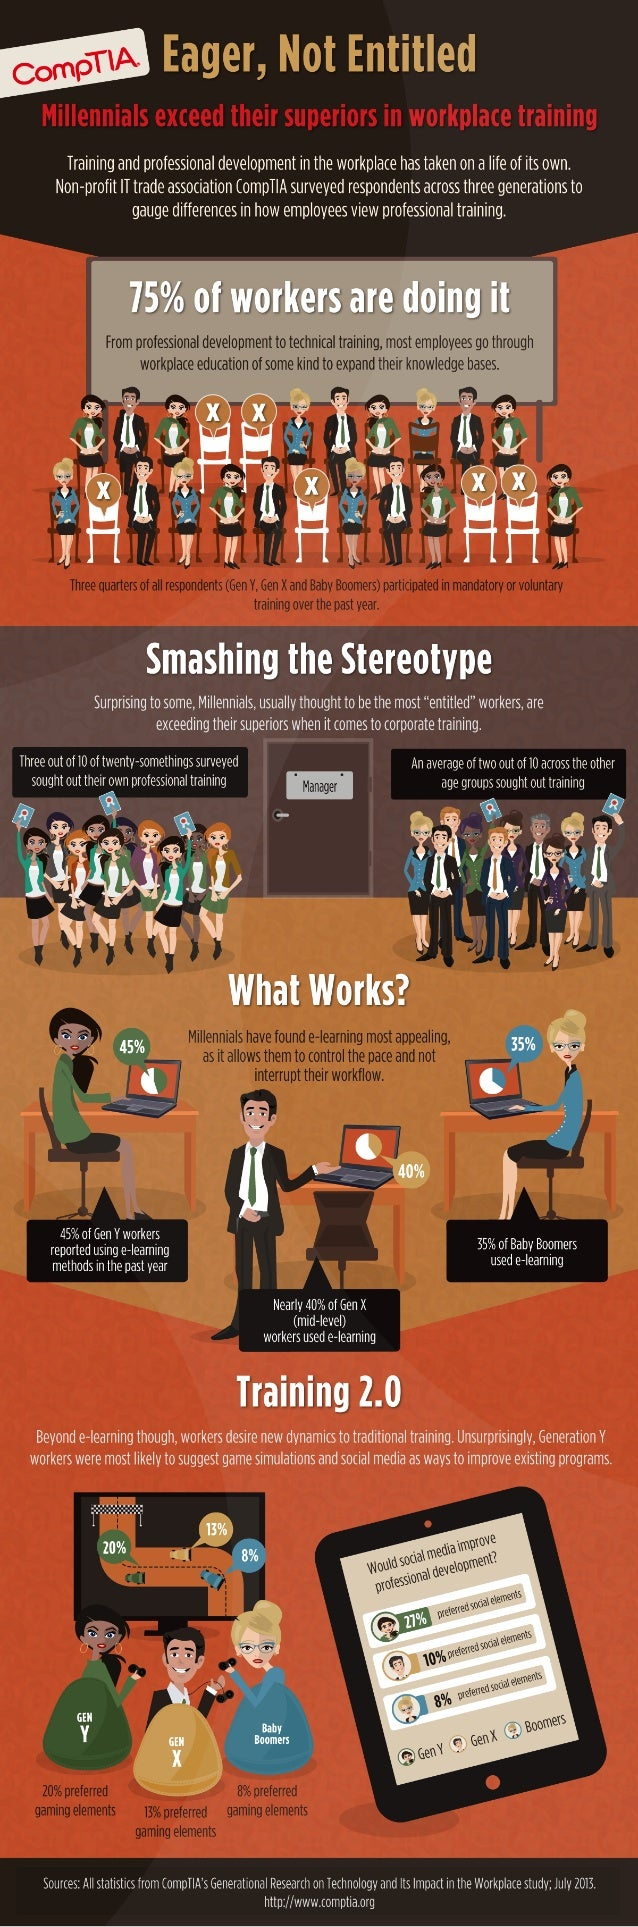 Millenials Exceed Their Supporters In Workplace Training